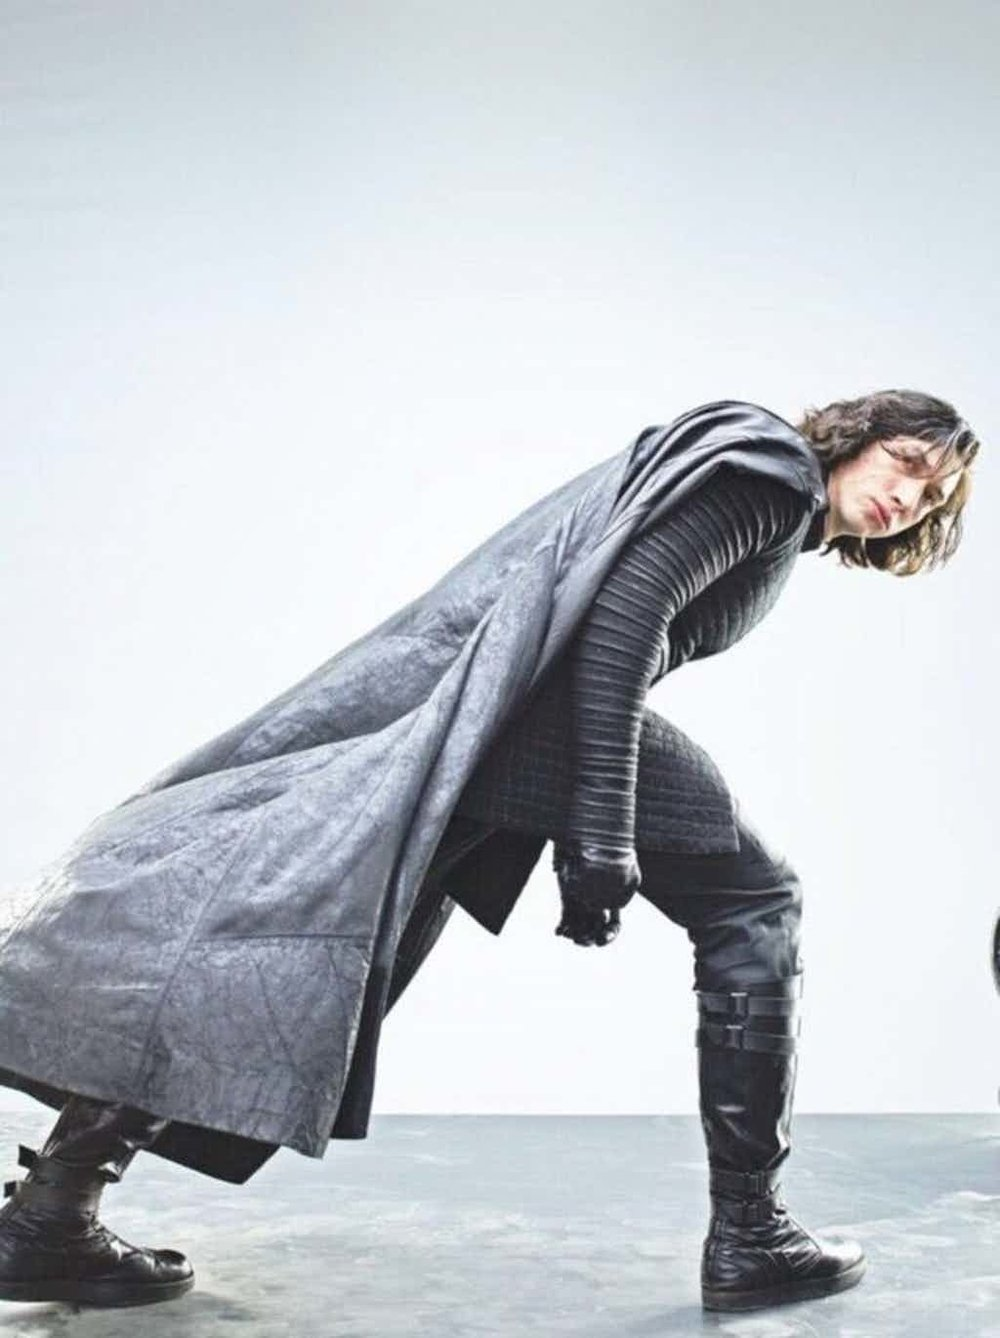 Star-Wars-The-Last-Jedi-Adam-Driver-as-Kylo-Ren-in-Cape-Leaning-Forward.jpg